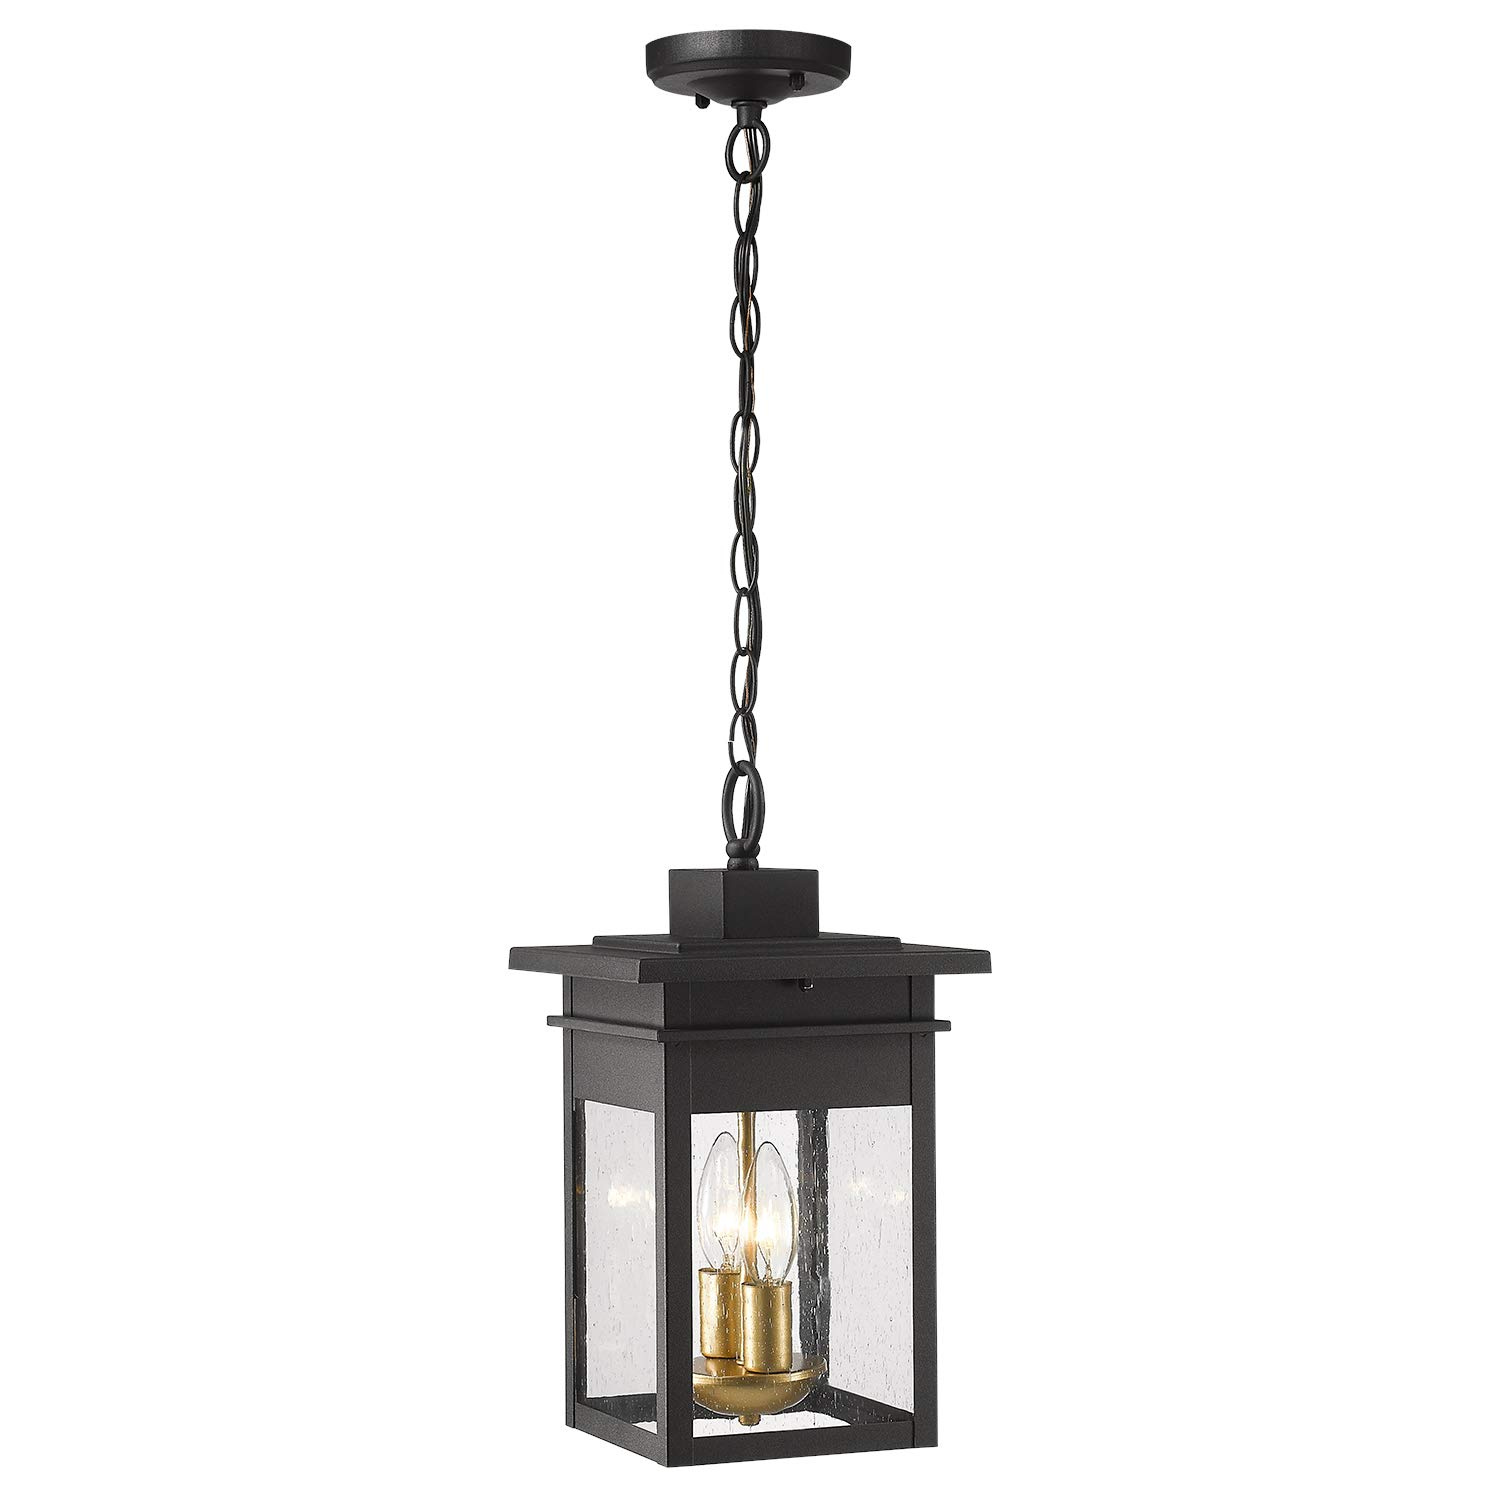 Zeyu 2-Light Outdoor Hanging Lights for Porch, 14 inch Exterior Pendant Light Fixtures, Black and Gold Finish with Seeded Glass, 20072H2 by zeyu